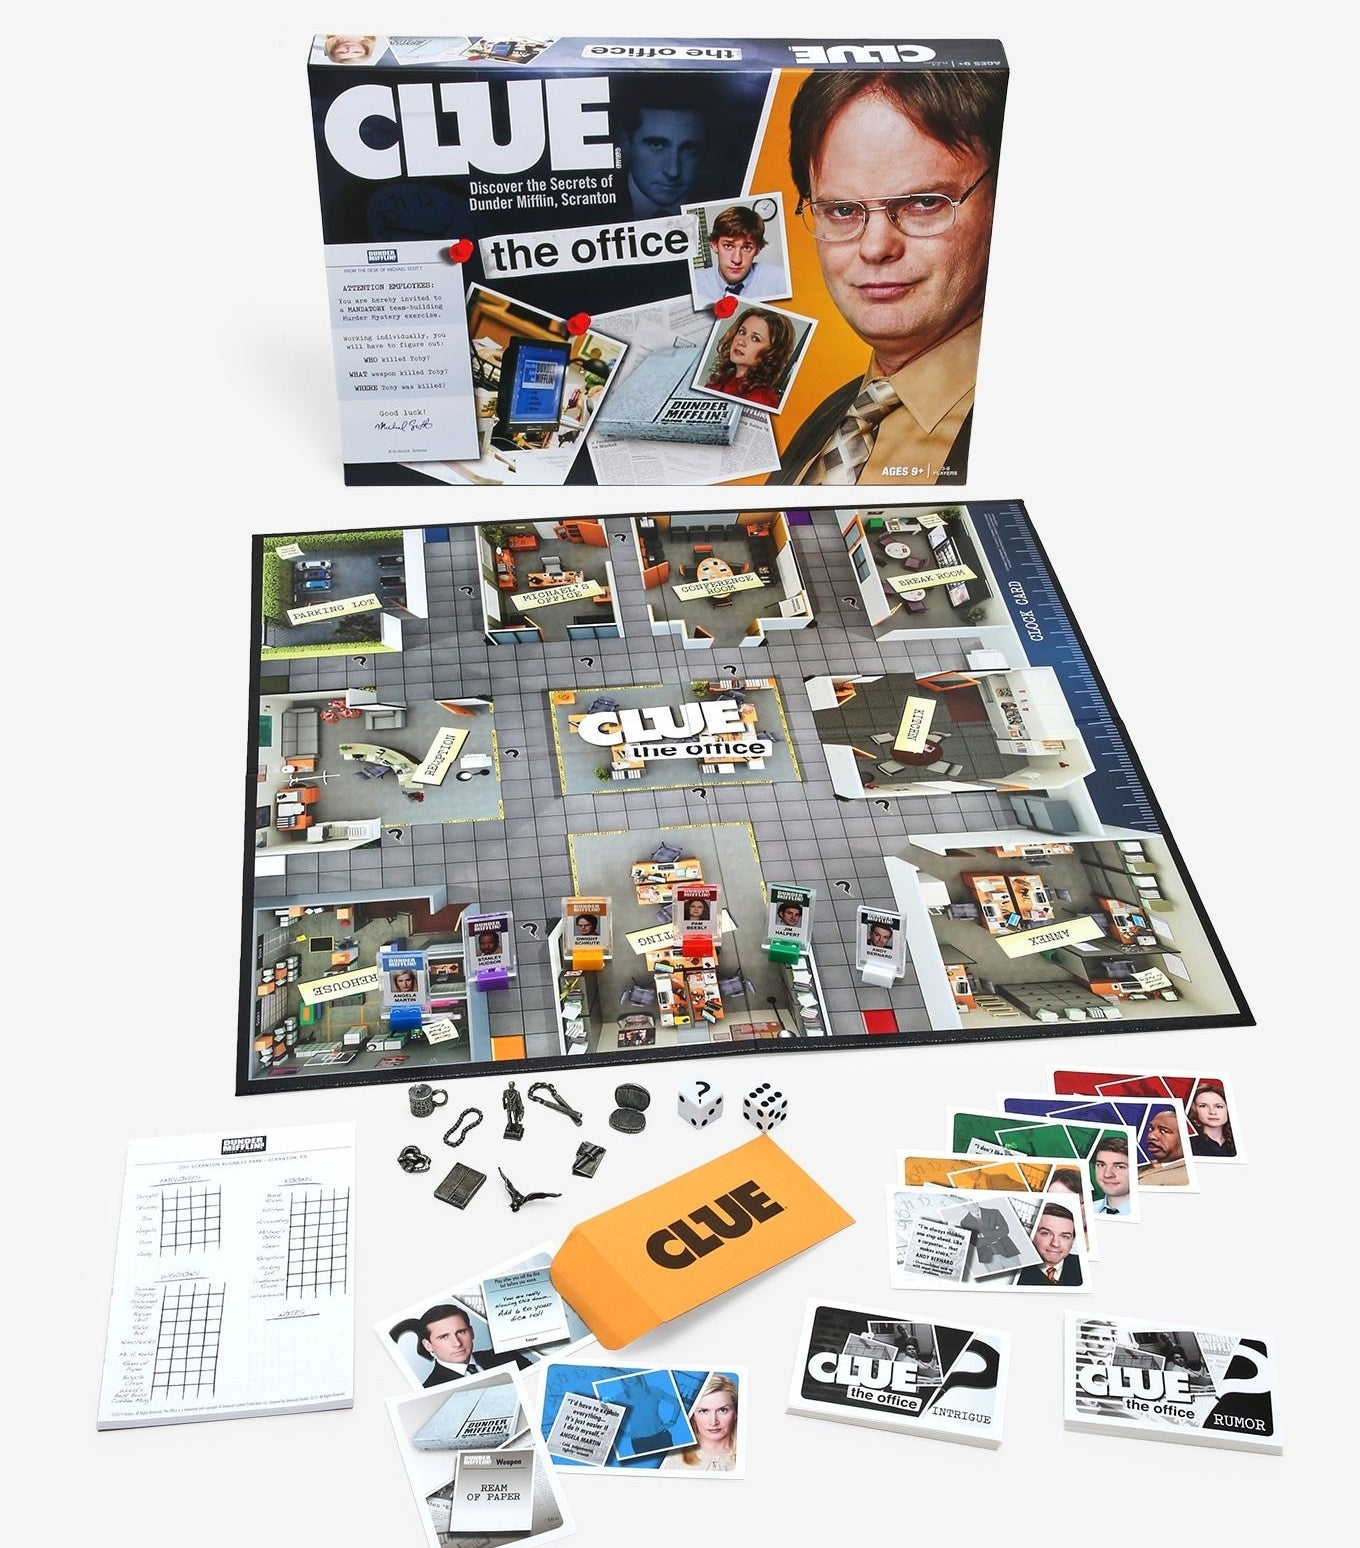 the Clue game with all of the pieces and board spread out